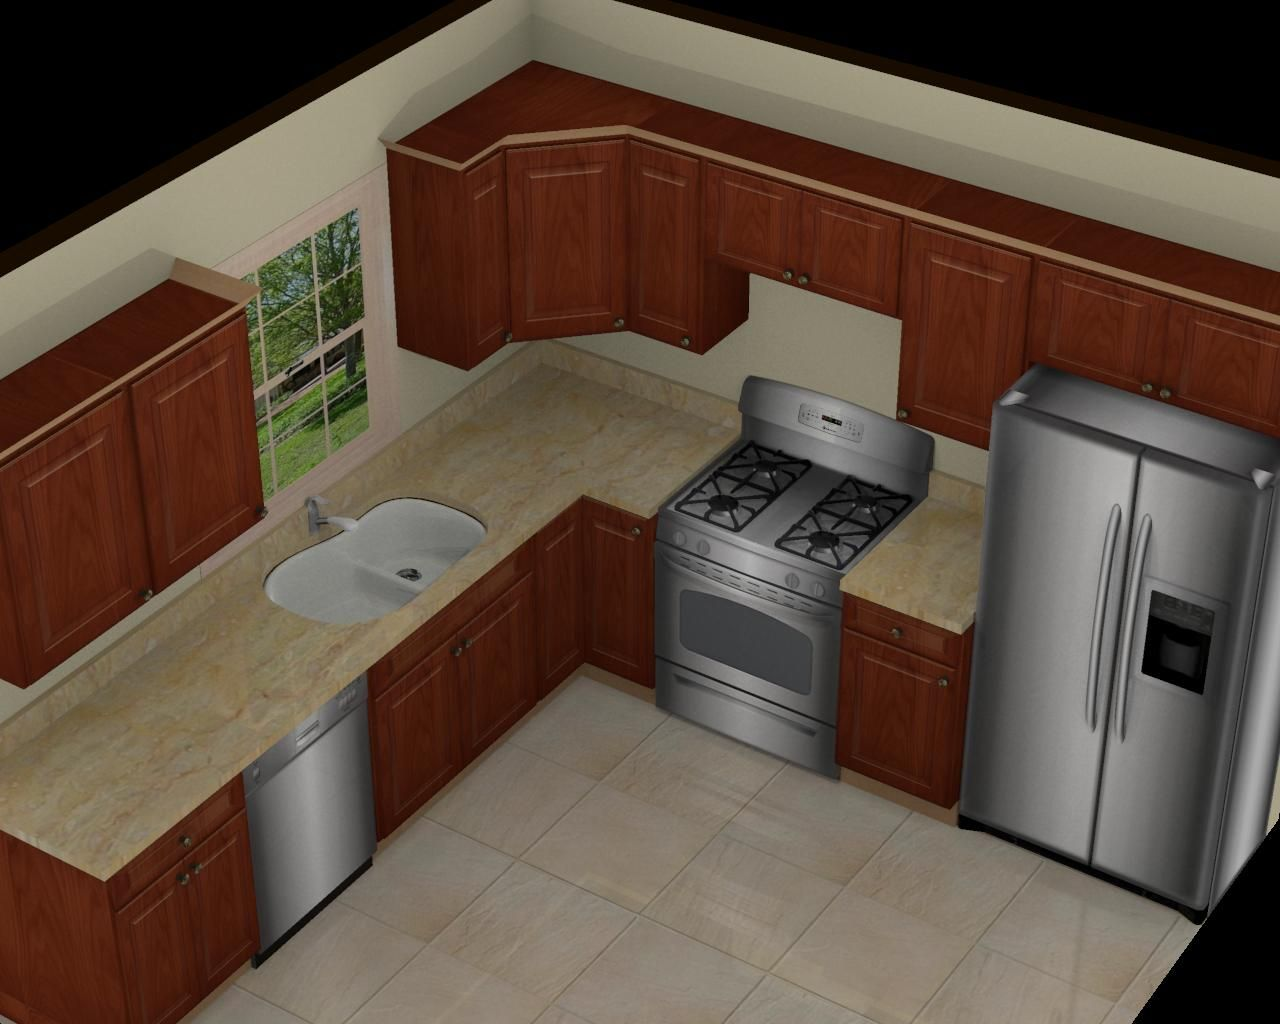 There are many ideas 10 10 kitchen design that you can do I shaped kitchen